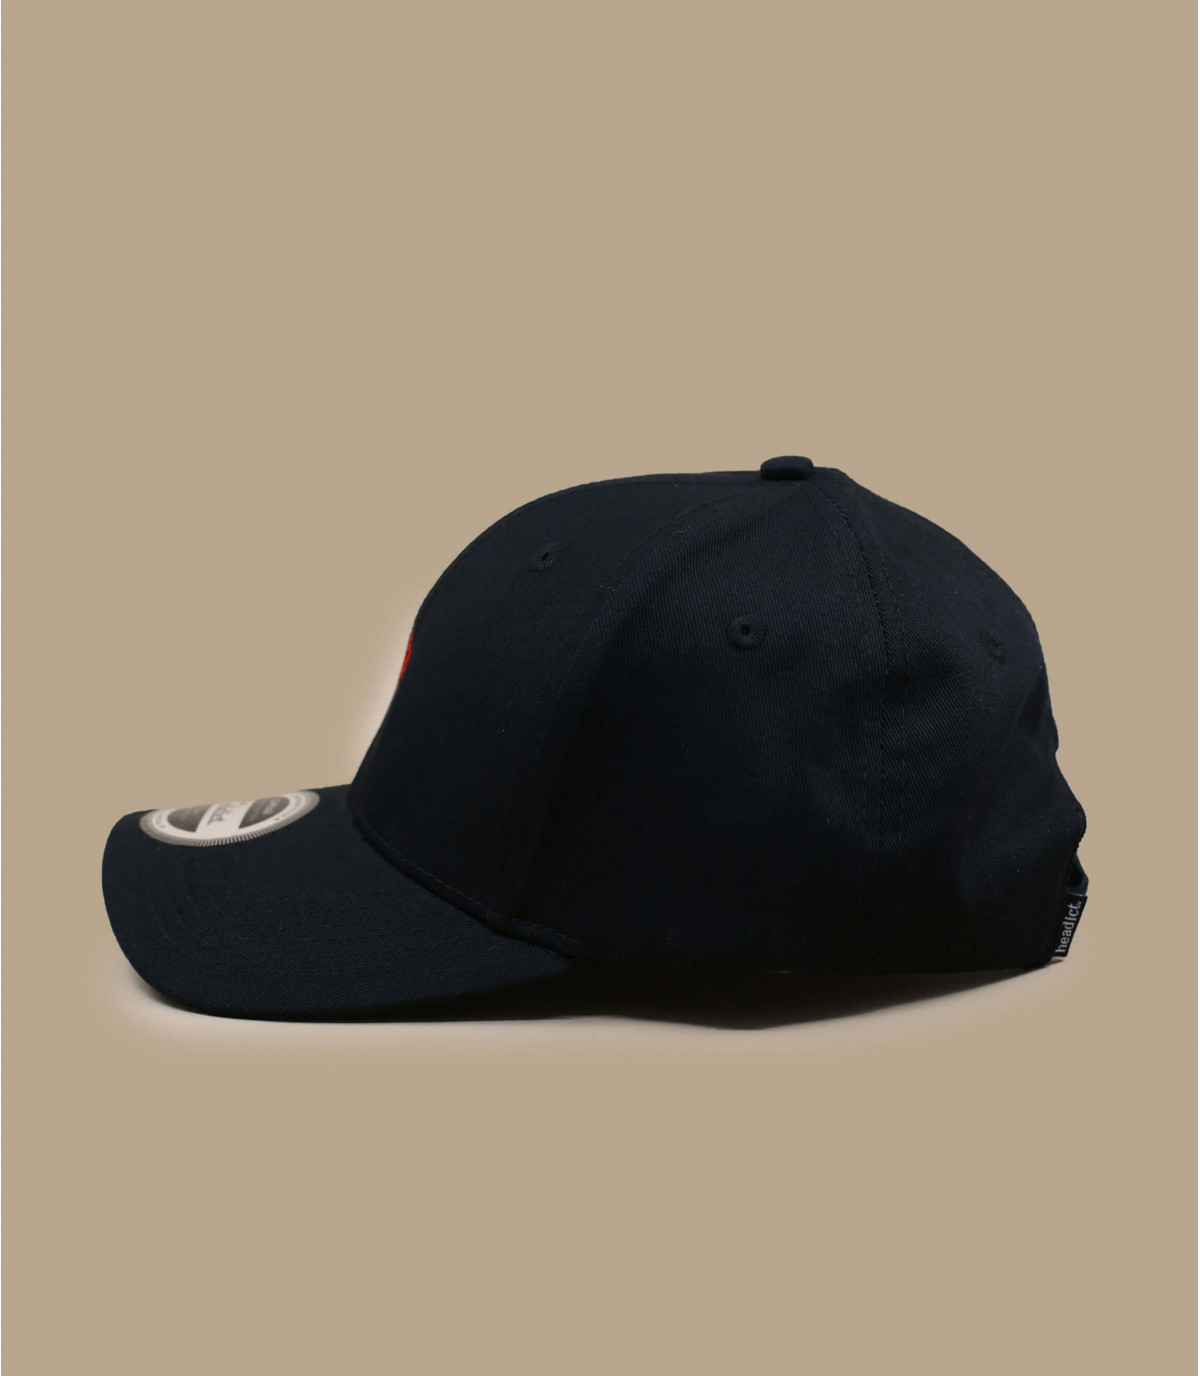 CASQUETTE NOIRE 1 embroidered with red roses